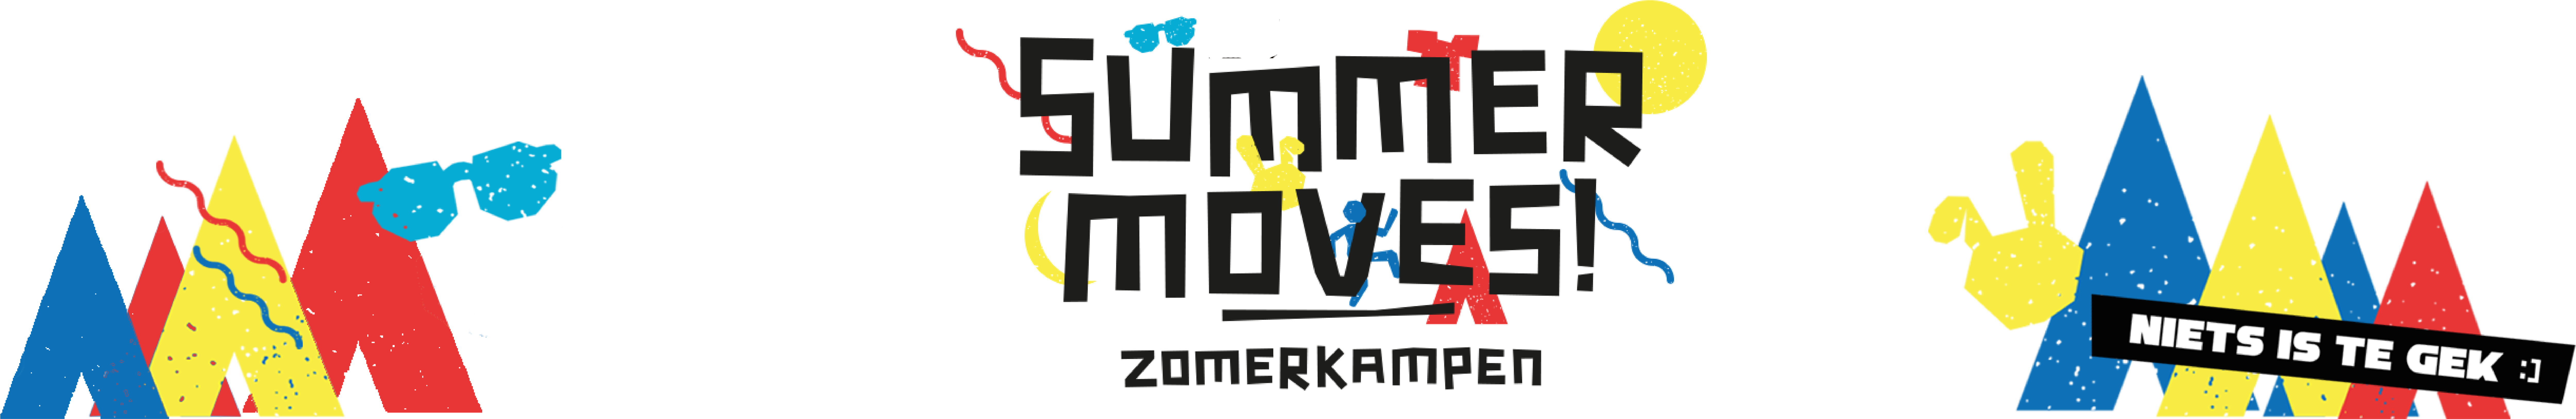 SummerMoves zomerkampen